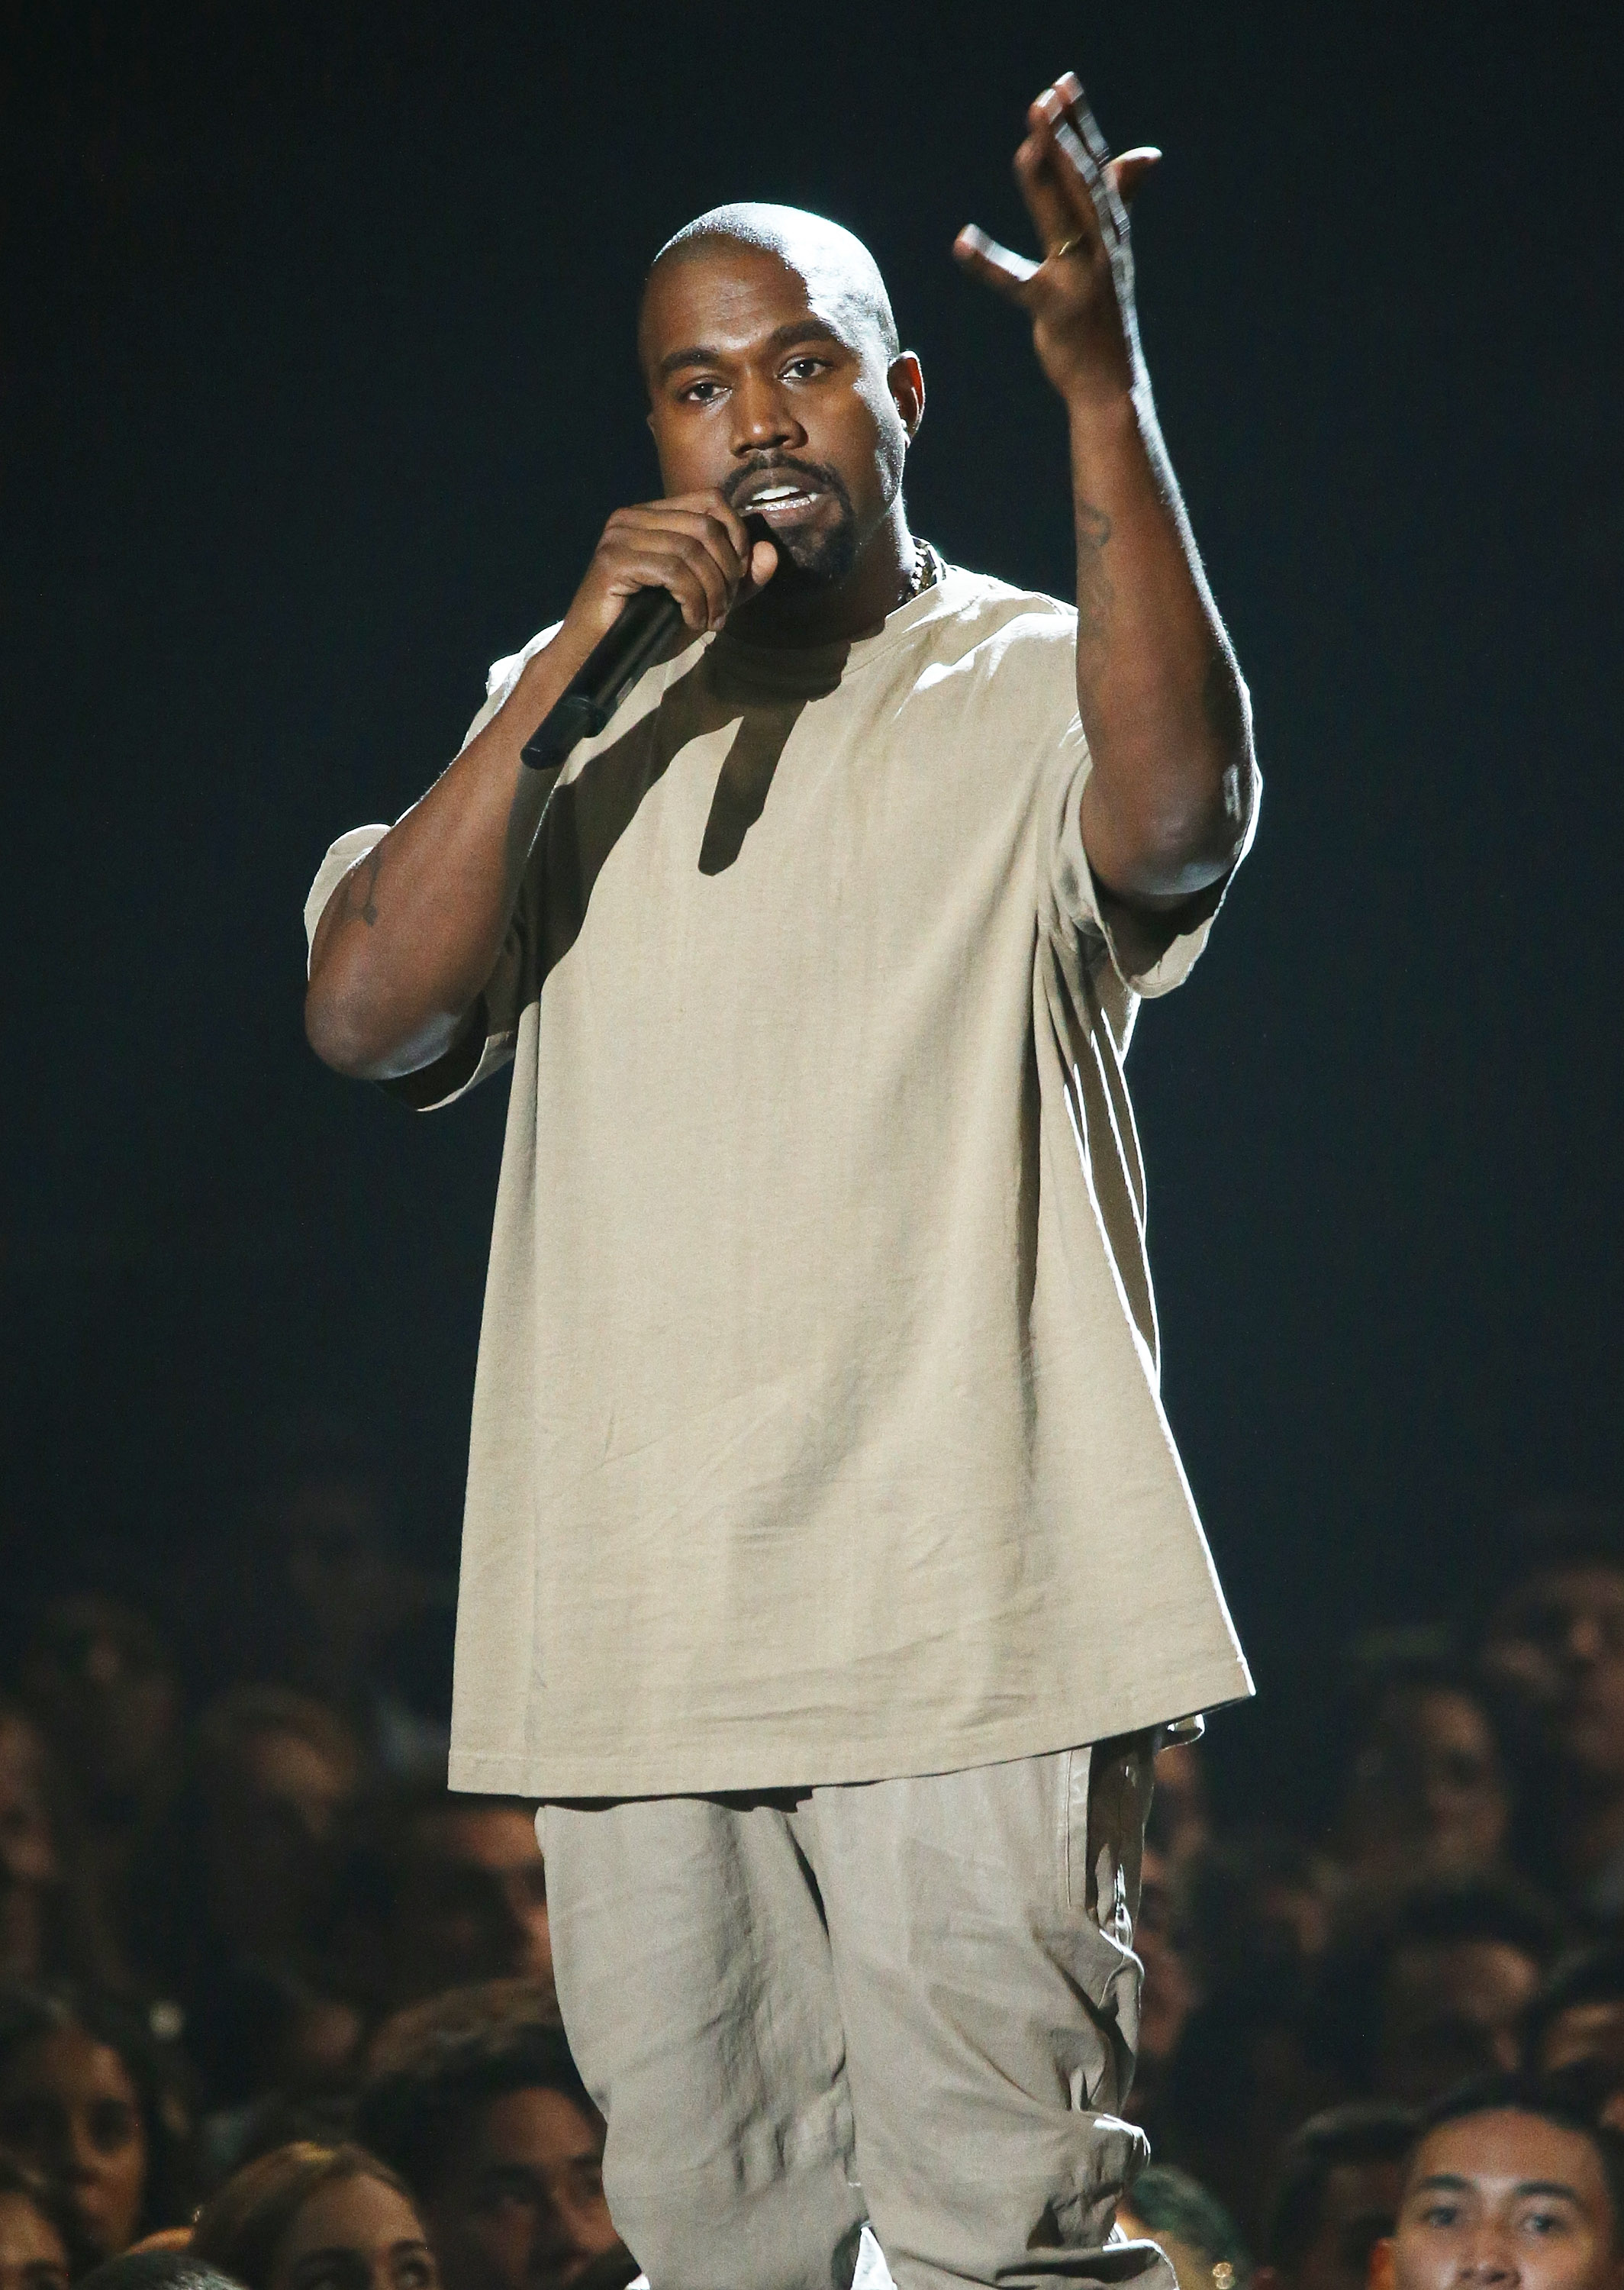 Kanye West at the 2015 MTV Video Music Awards in Los Angeles on Aug. 30, 2015.